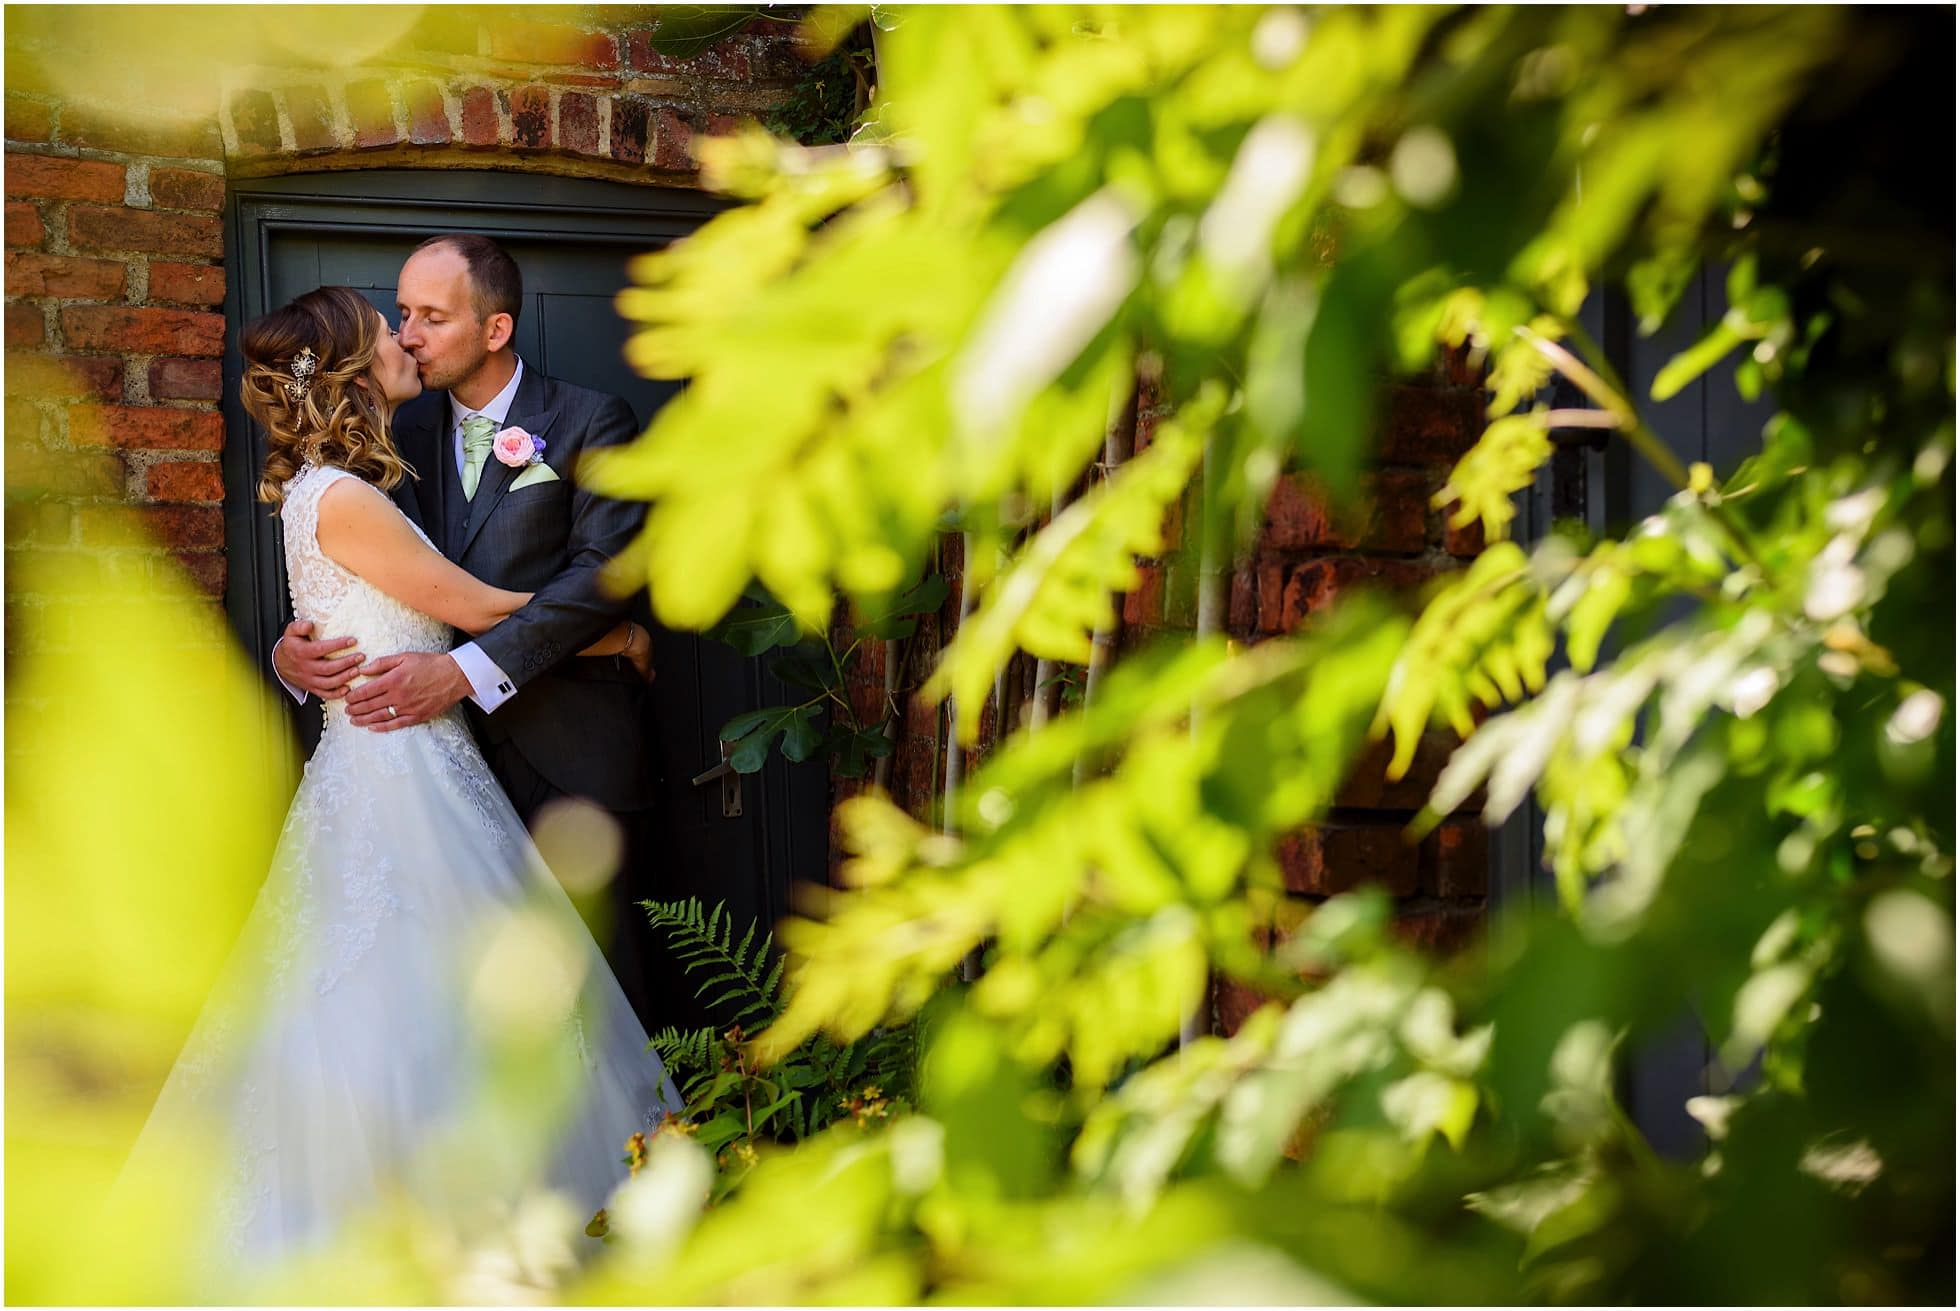 Peckover House Garden Wedding Photography